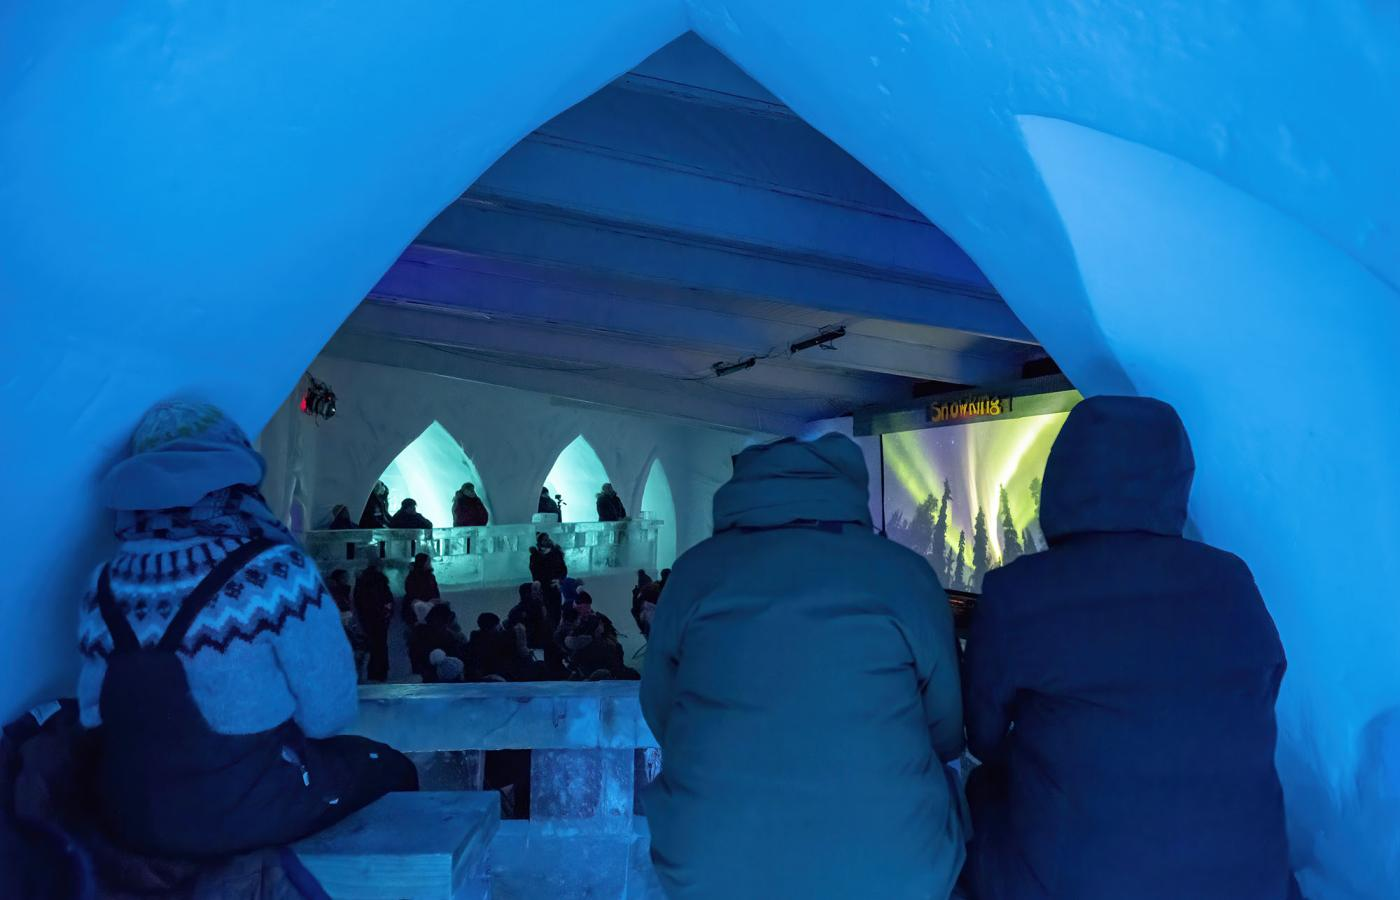 NAKA festival goers peek into the festival happenings at the snowcastle